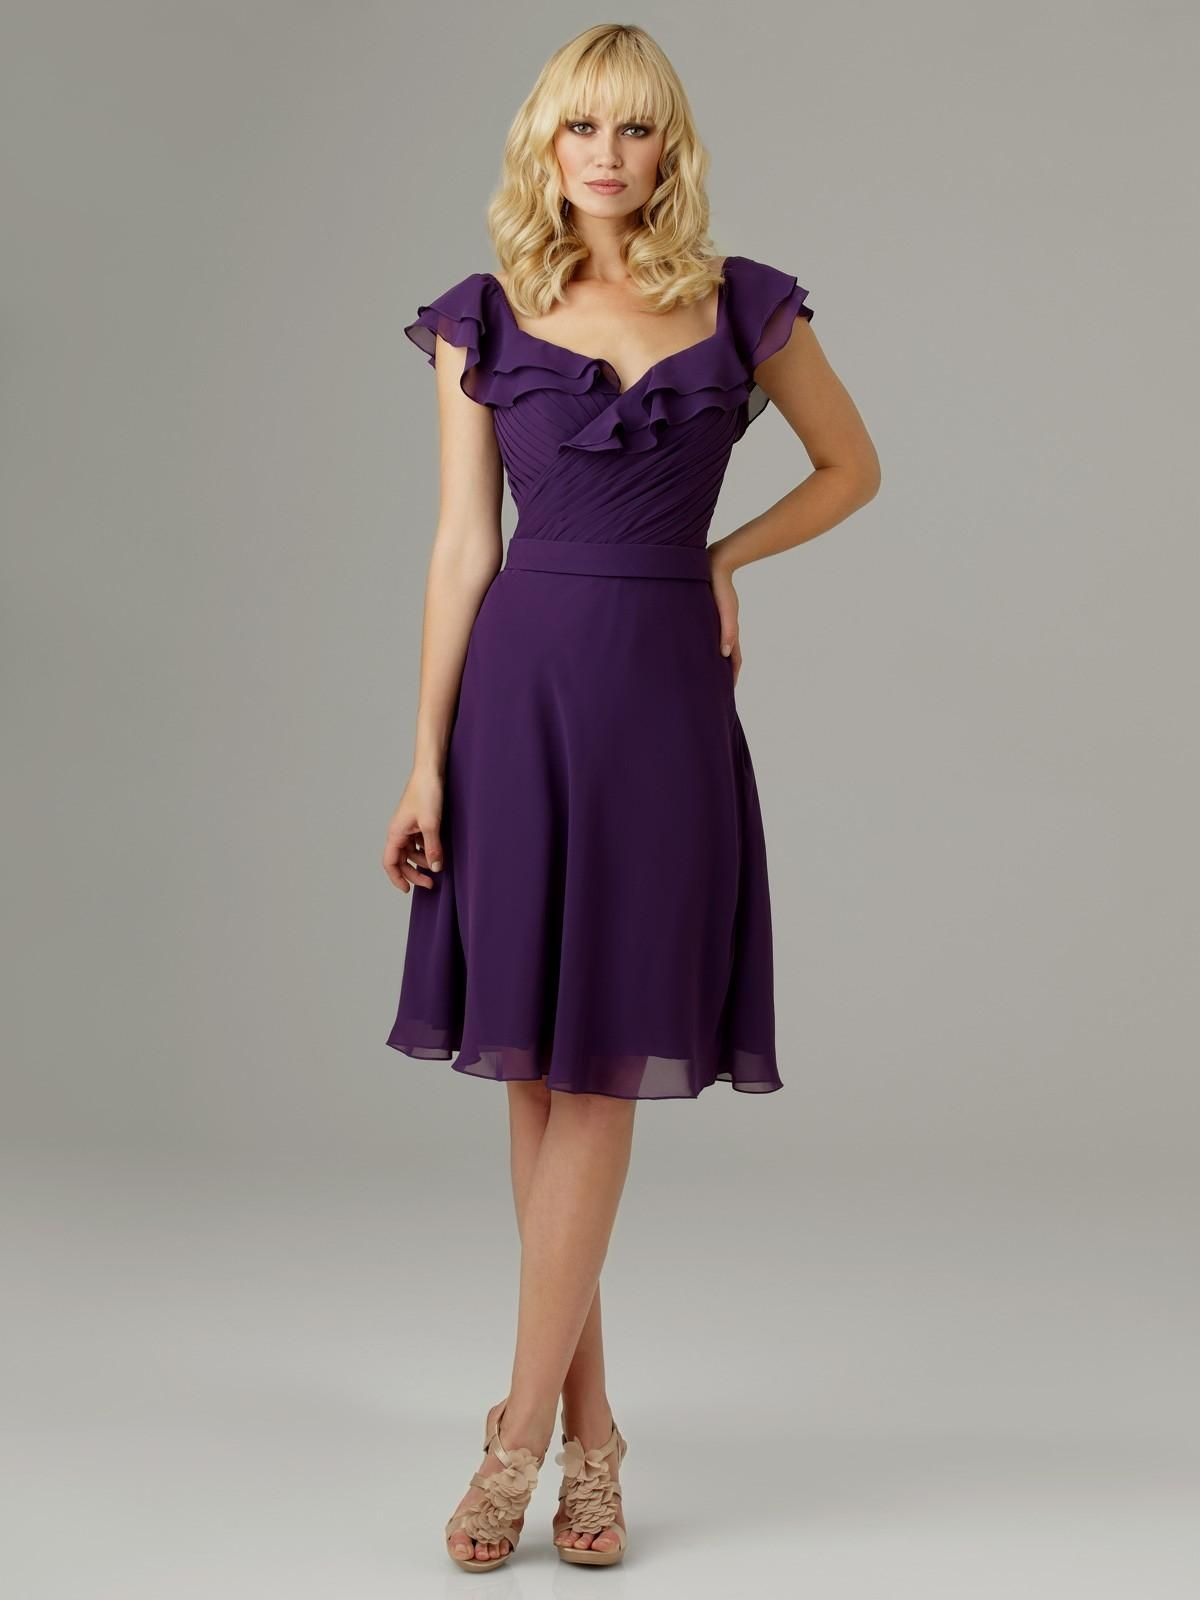 15 best ideas about bridesmaid dresses with sleeves simple 2017 15 best ideas about bridesmaid dresses with sleeves simple 2017 bridesmaid dresses purple ombrellifo Gallery